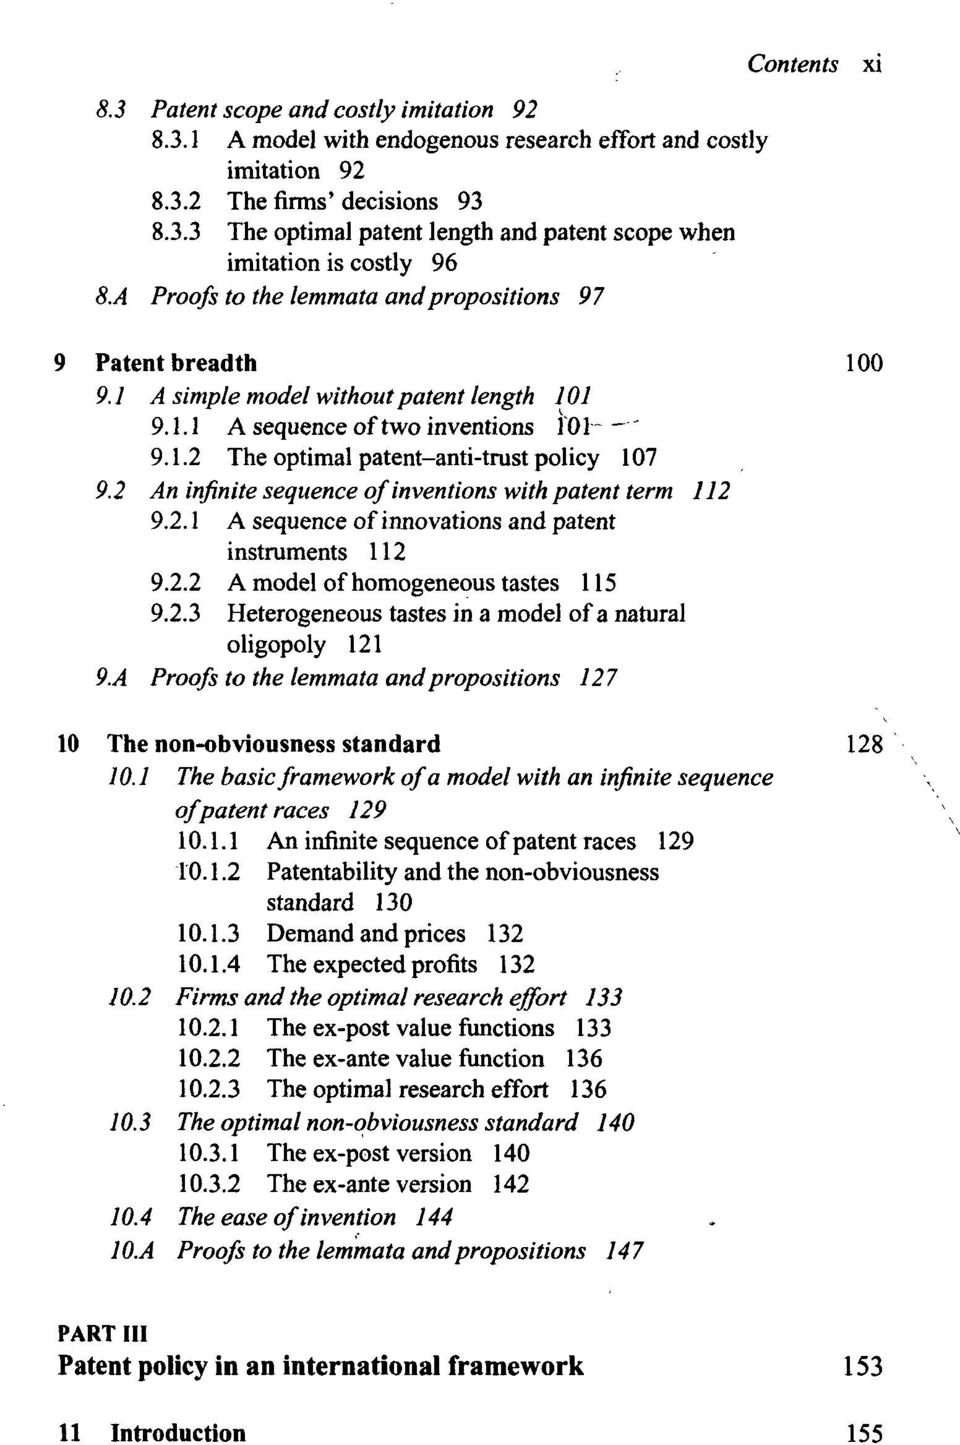 2 An infinite sequence of inventions with patent term 112 9.2.1 A sequence of innovations and patent instruments 112 9.2.2 A model of homogeneous tastes 115 9.2.3 Heterogeneous tastes in a model of a natural oligopoly 121 9.